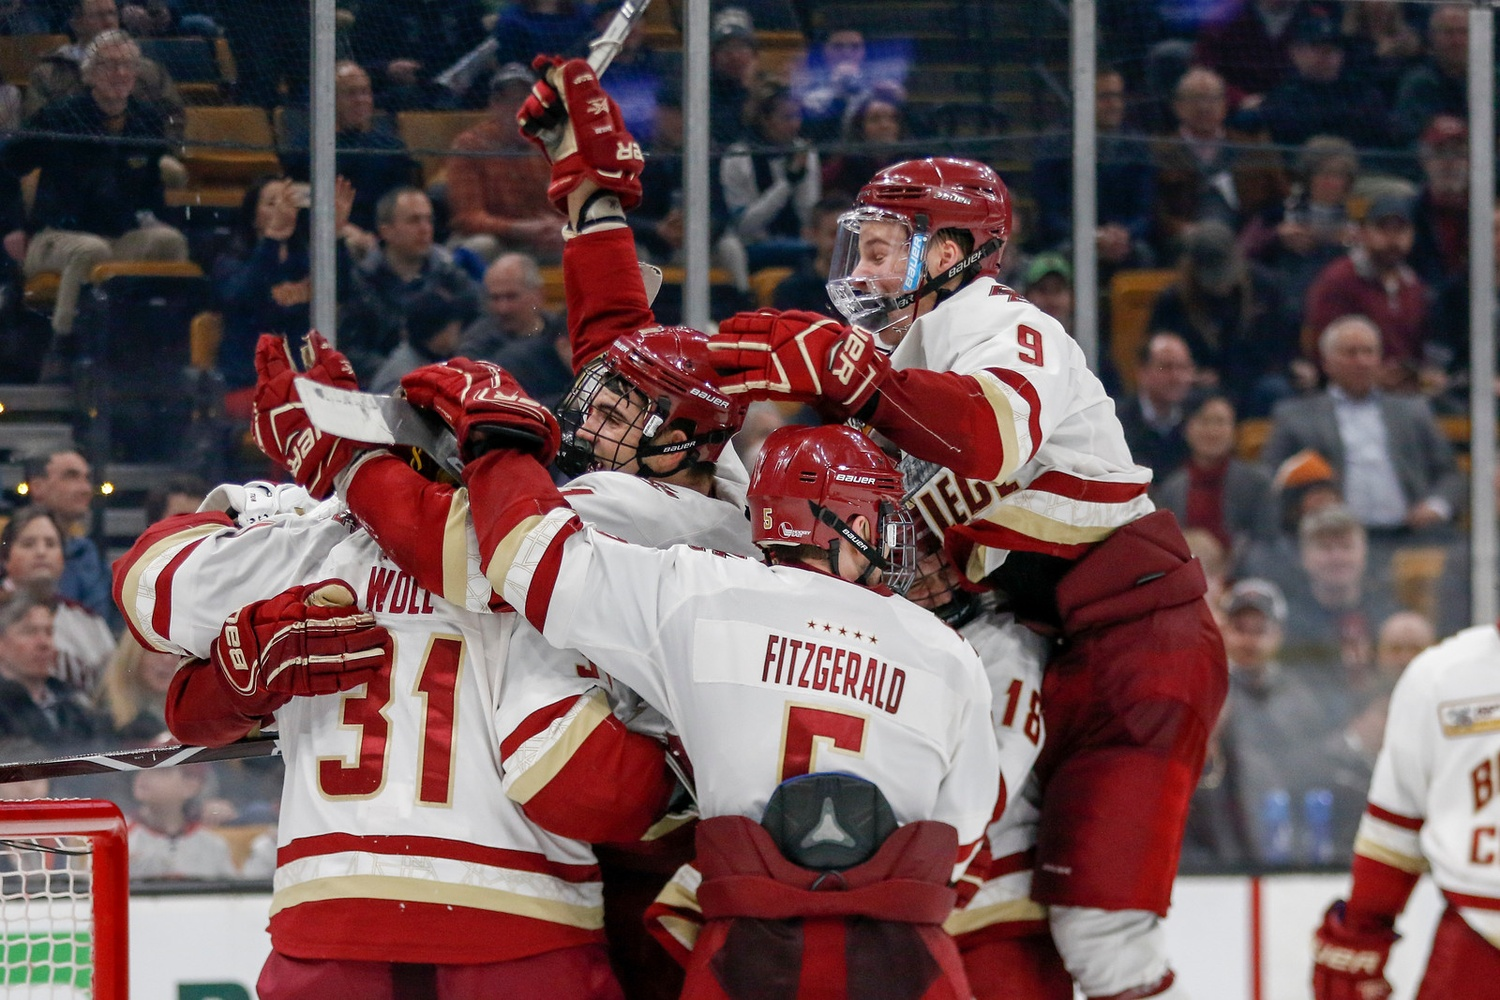 The Eagles topped a ranked Crimson squad that, on account of a recent surge in performance, many felt could contend for the Beanpot title this year